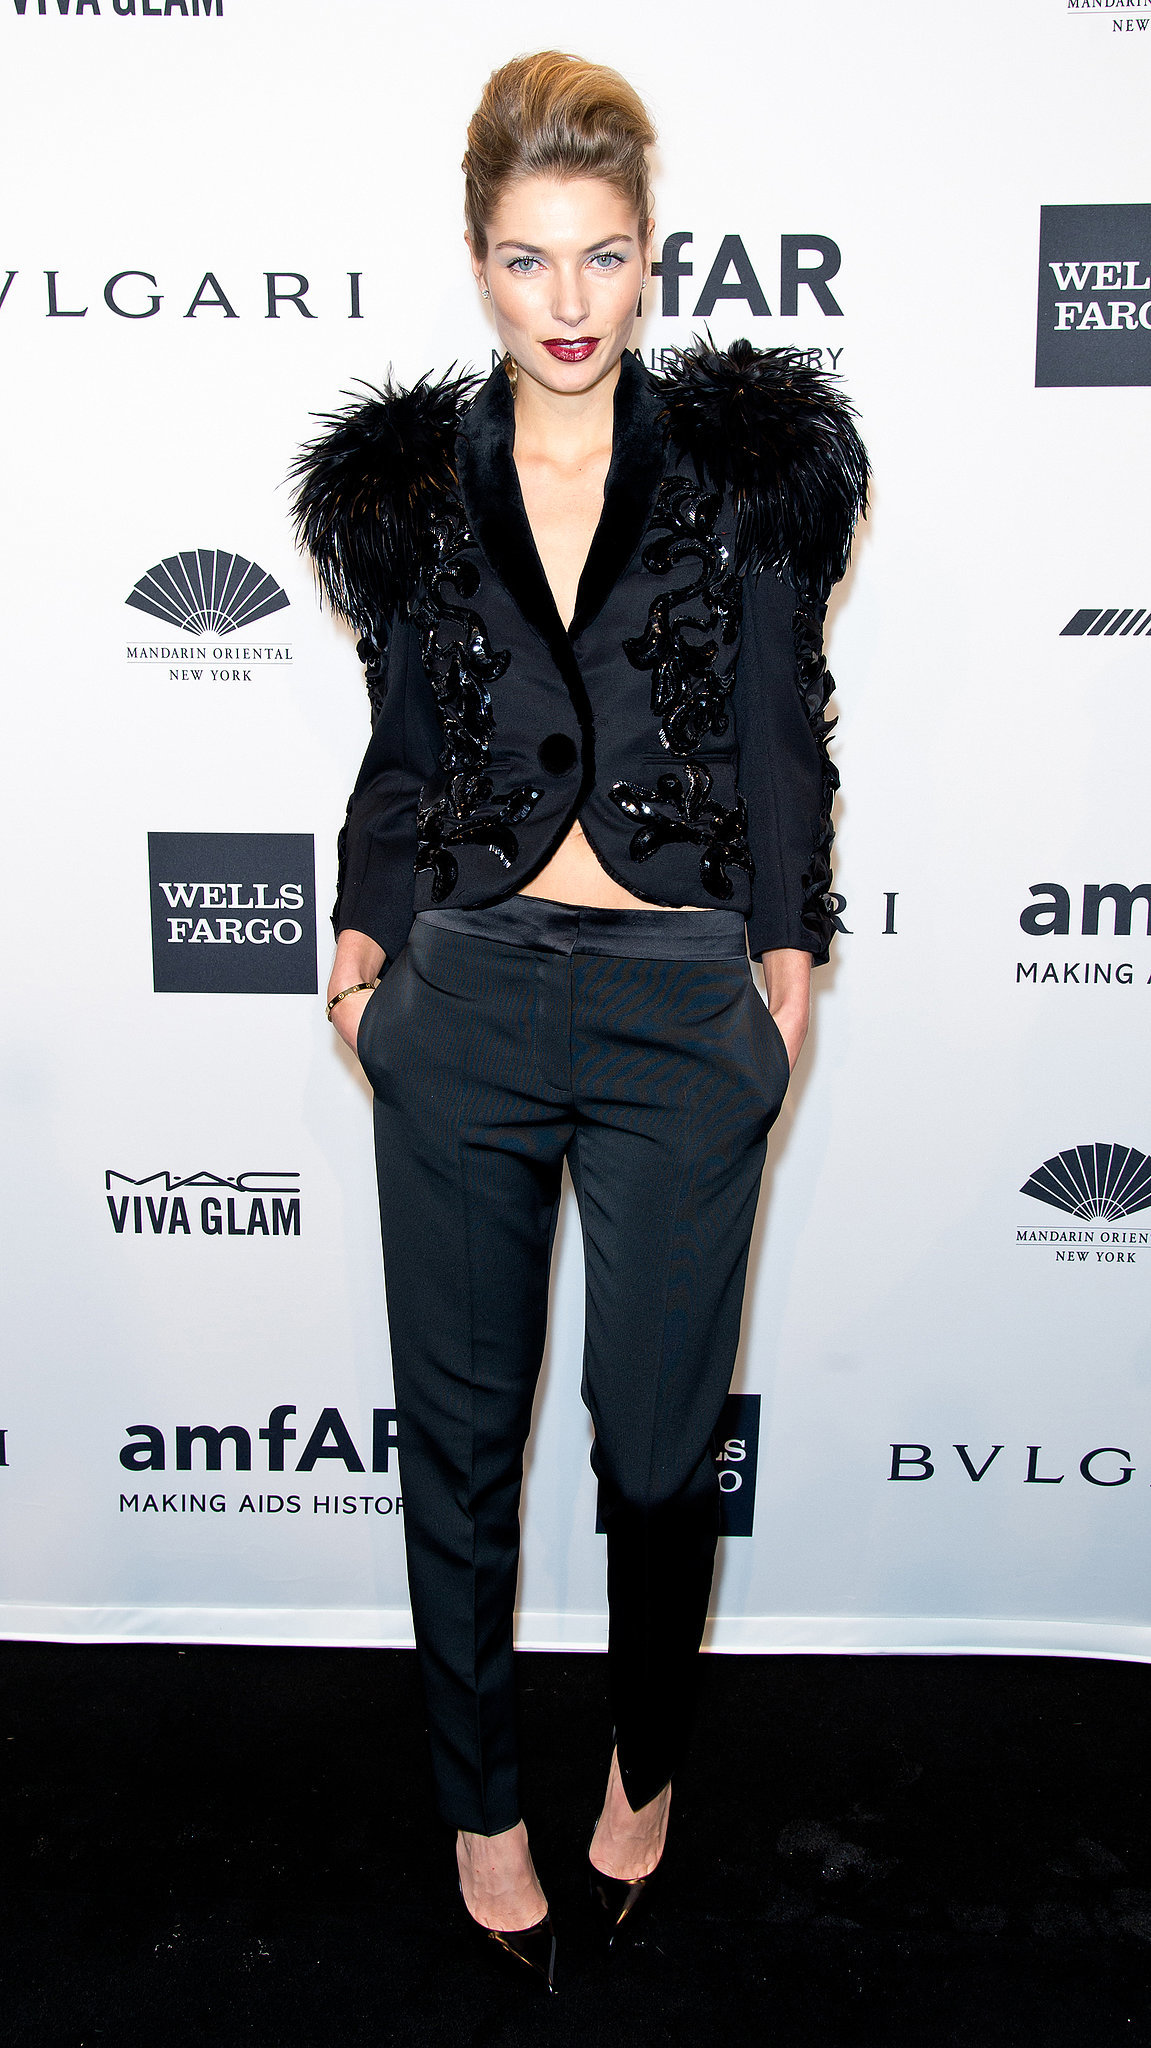 Jessica Hart, wearing Louis Vuitton, at amfAR's New York Gala.